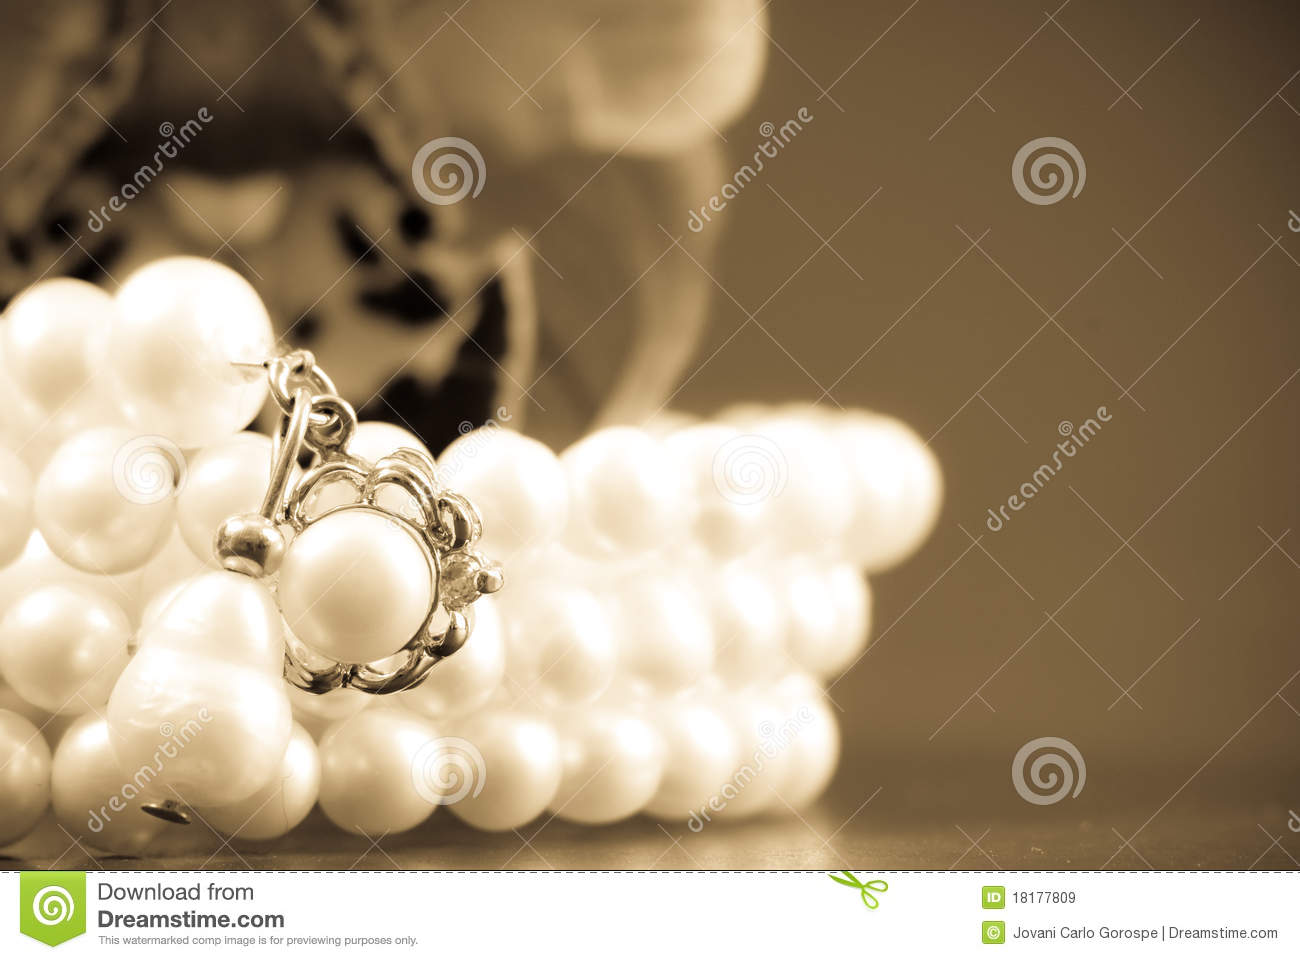 The Gift of Pearls